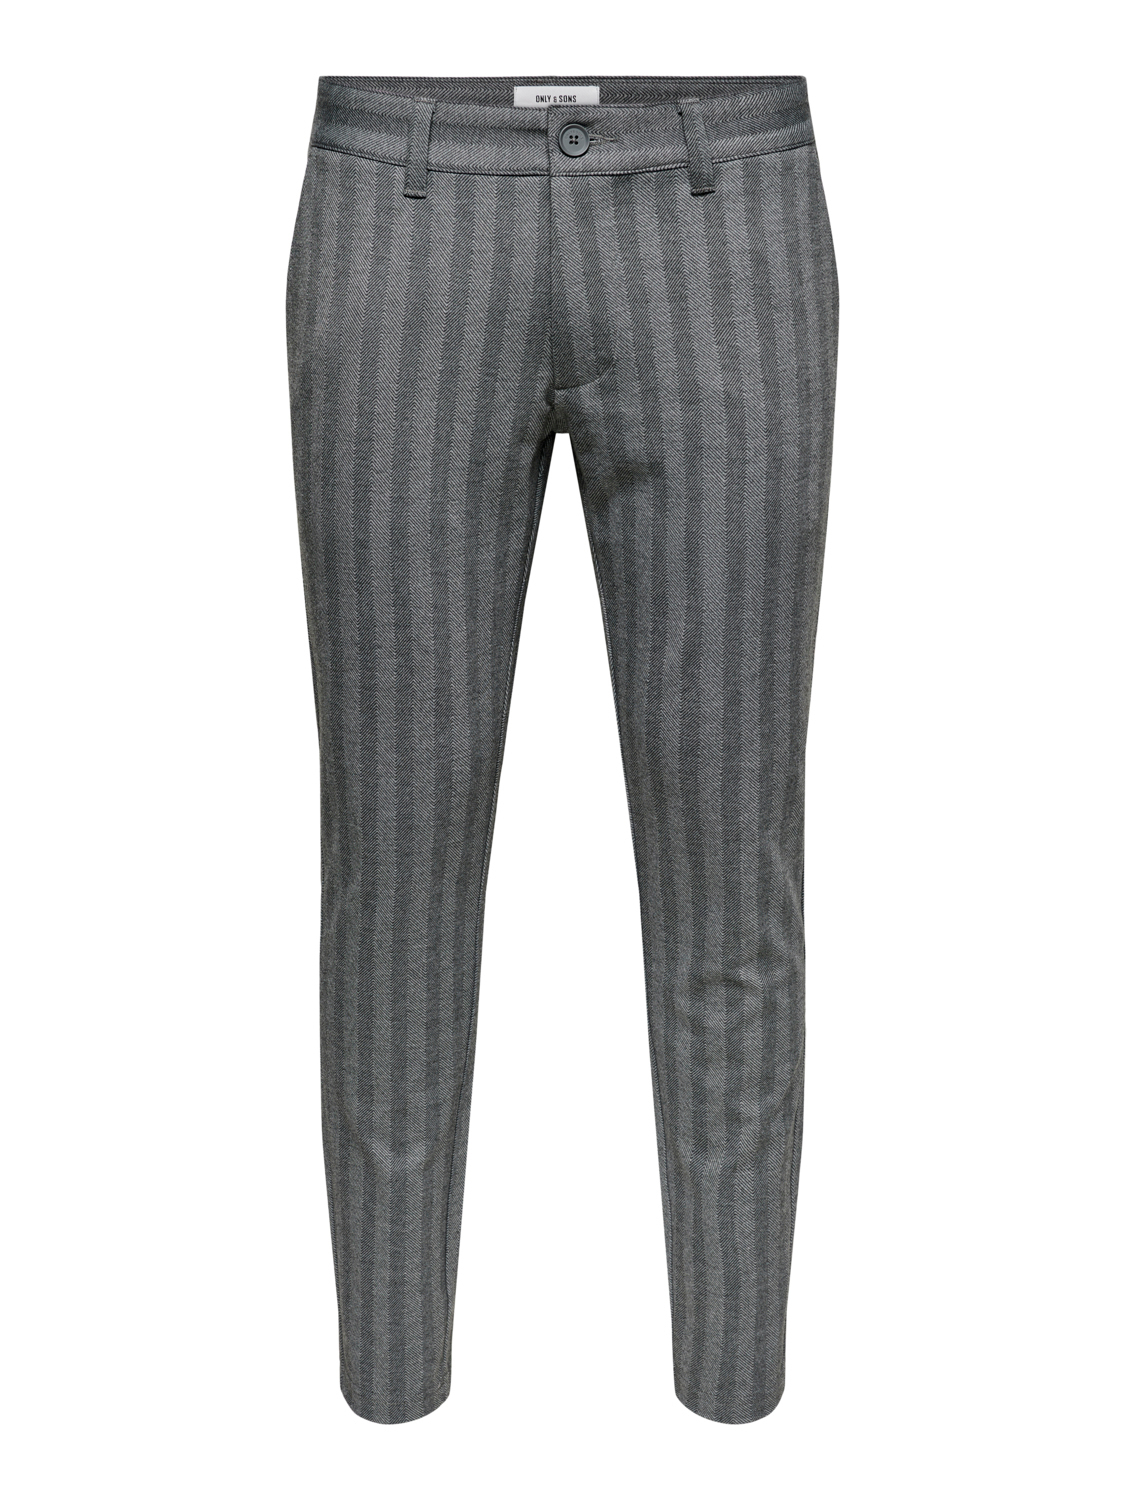 ONLY & SONS - Onsmark kamp Pants medium Grey | GATE 36 Hobro